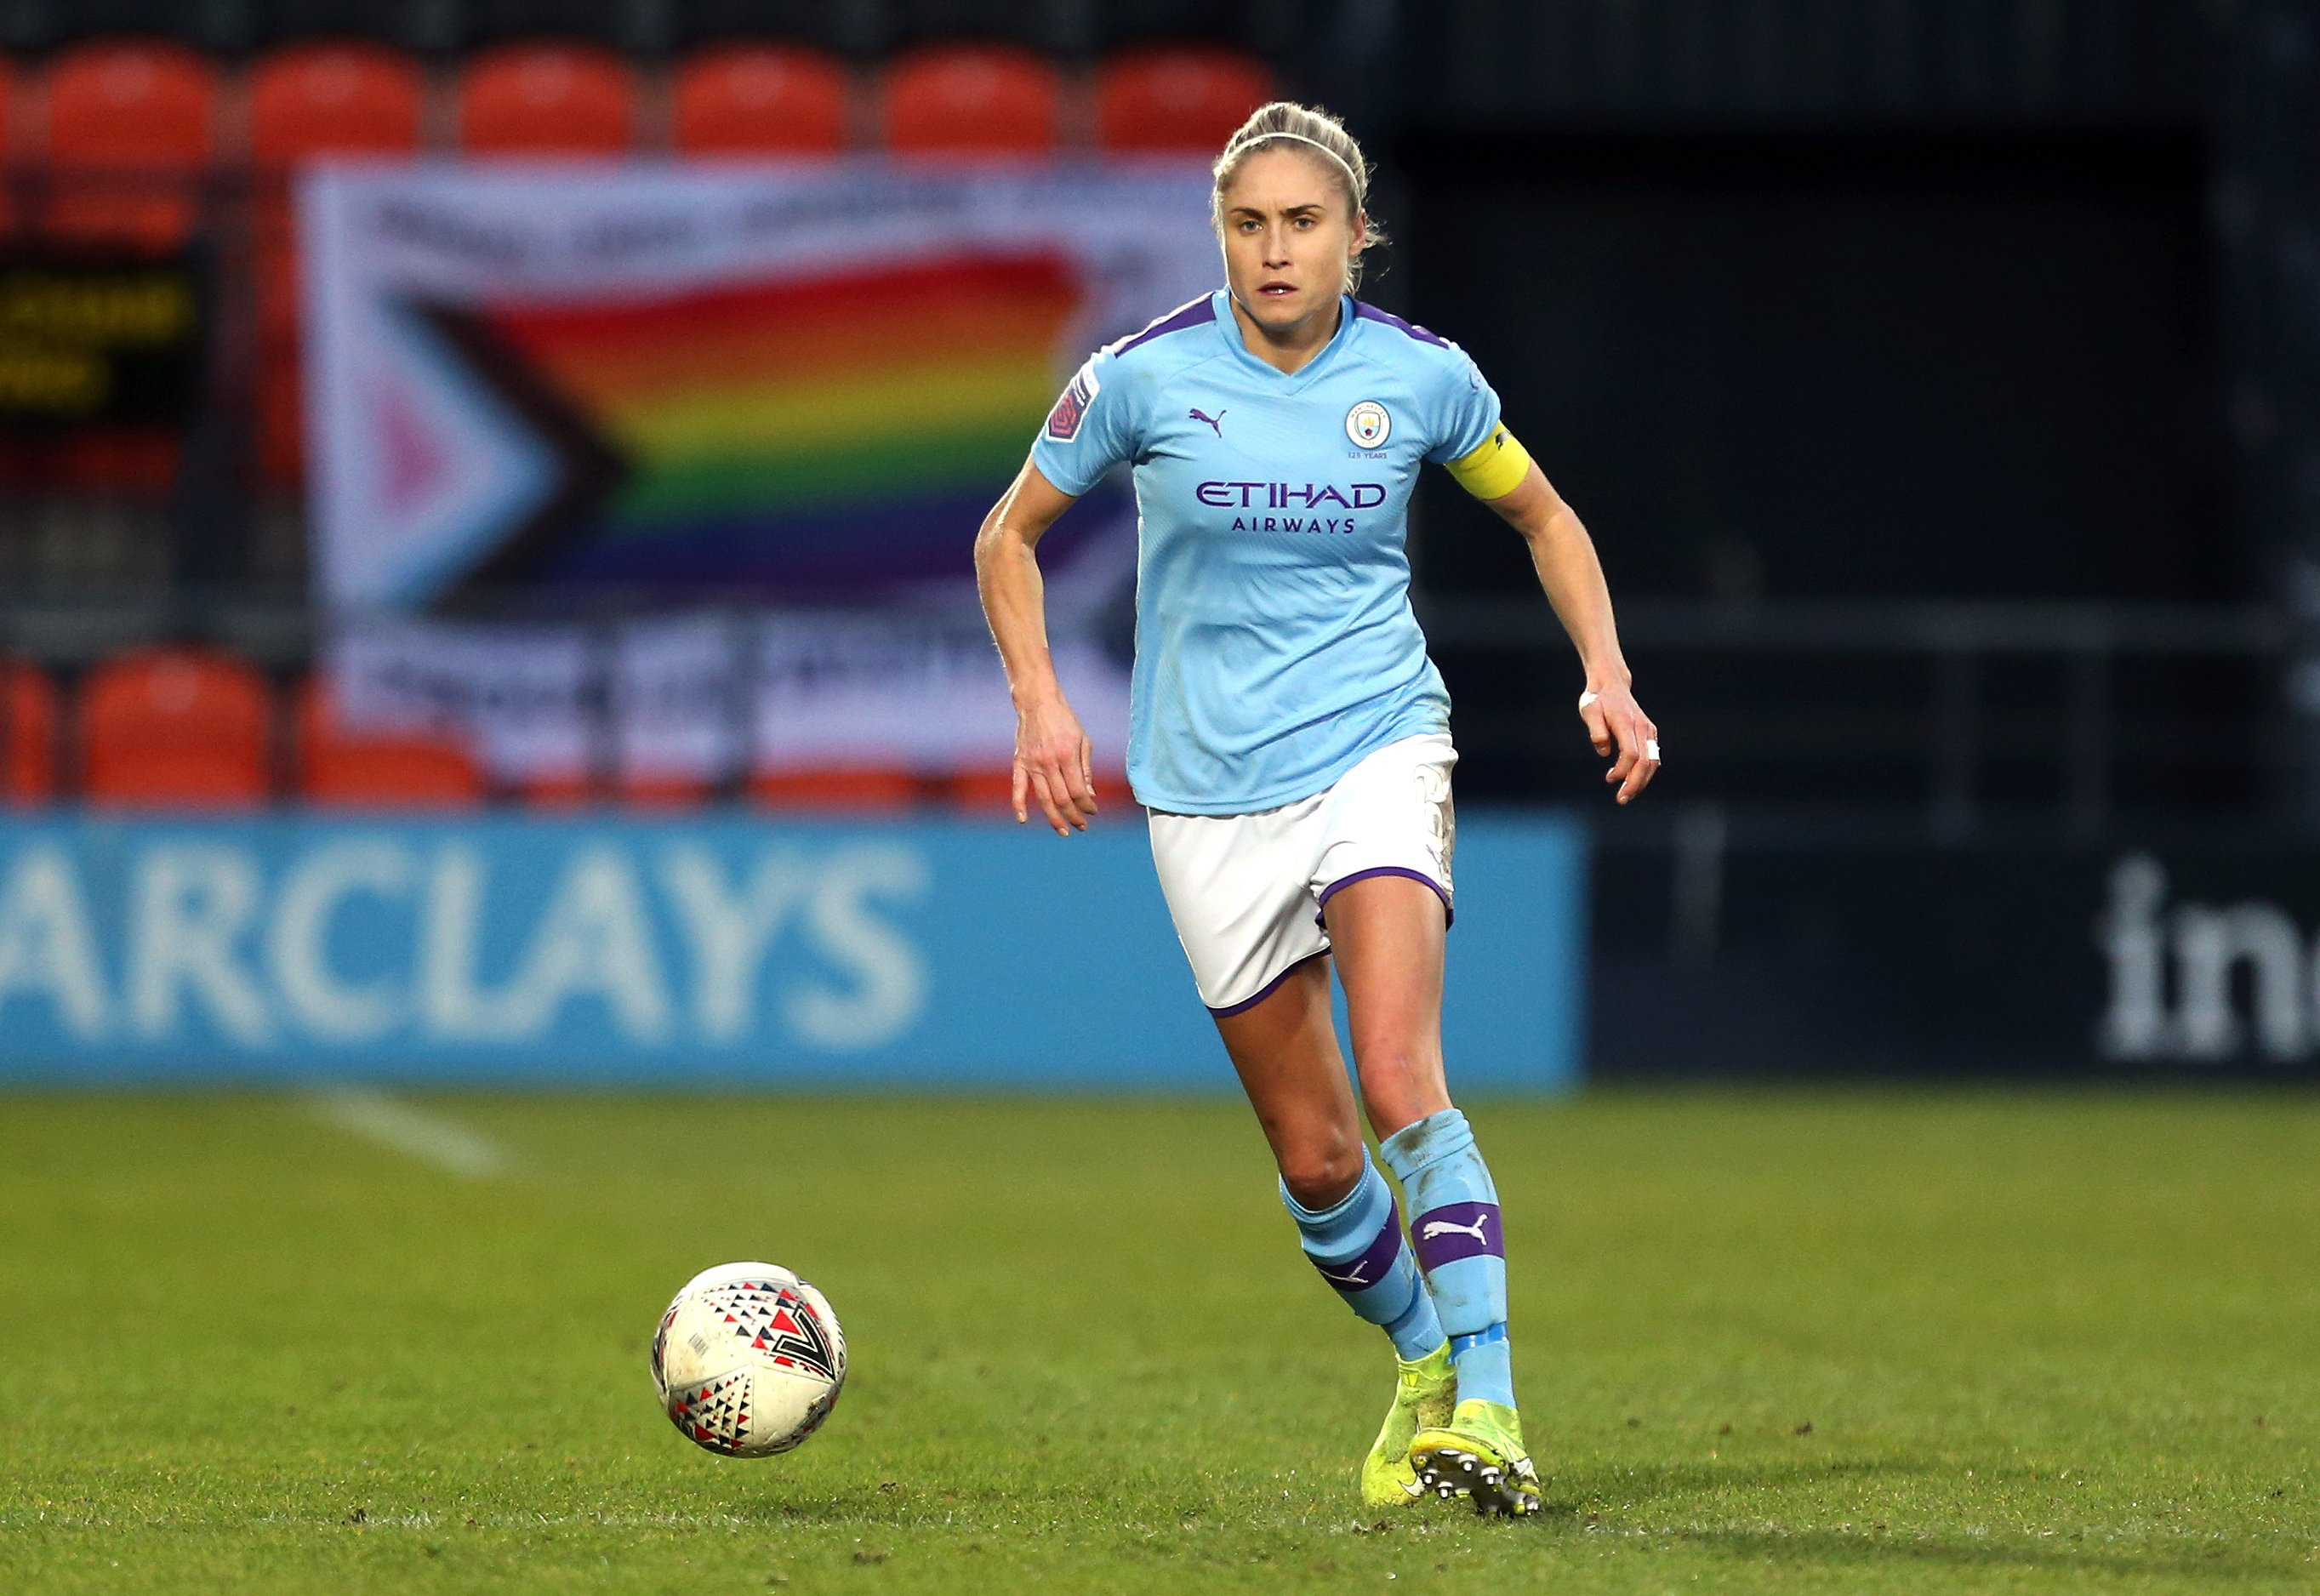 England captain Steph Houghton extends contract at Manchester City until 2022, saying it's 'a special place for me'